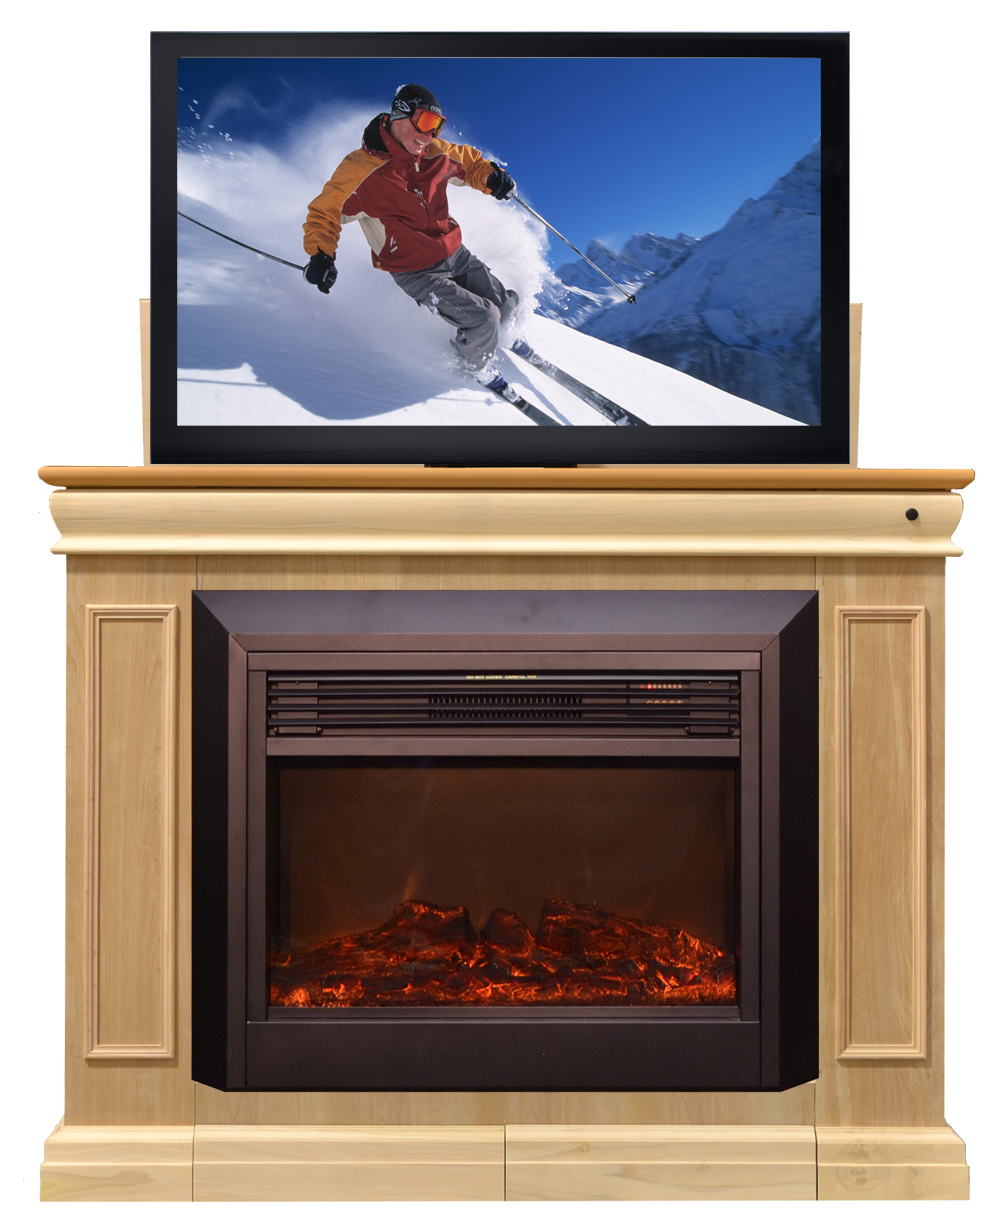 Conestoga fireplace tv lift cabinet for flat screen tvs up for Motorized flat screen tv lift